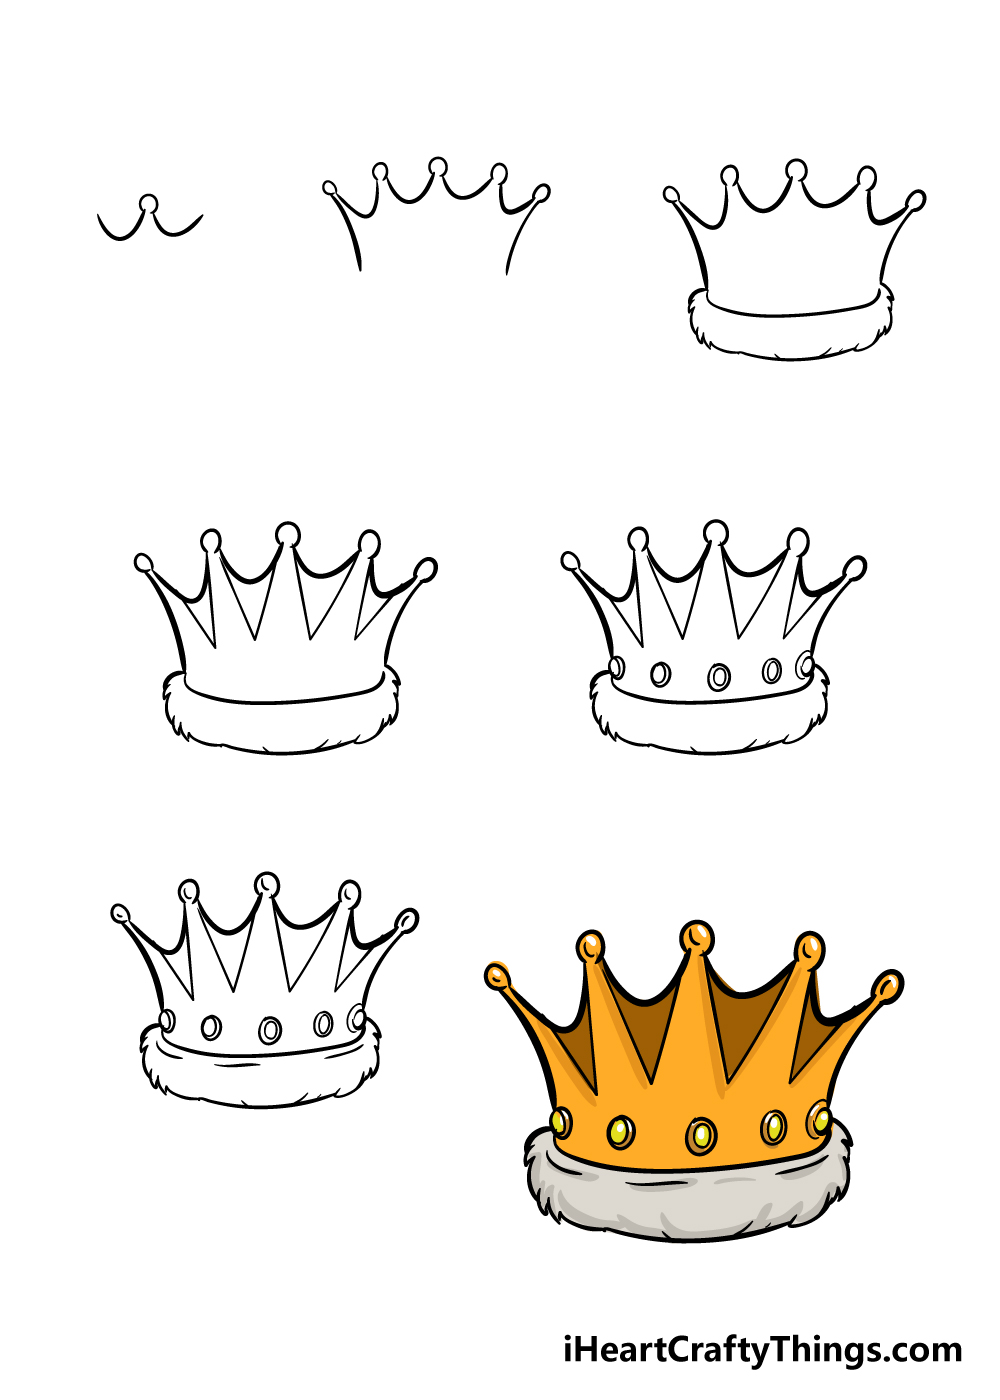 how to draw crown in 7 steps